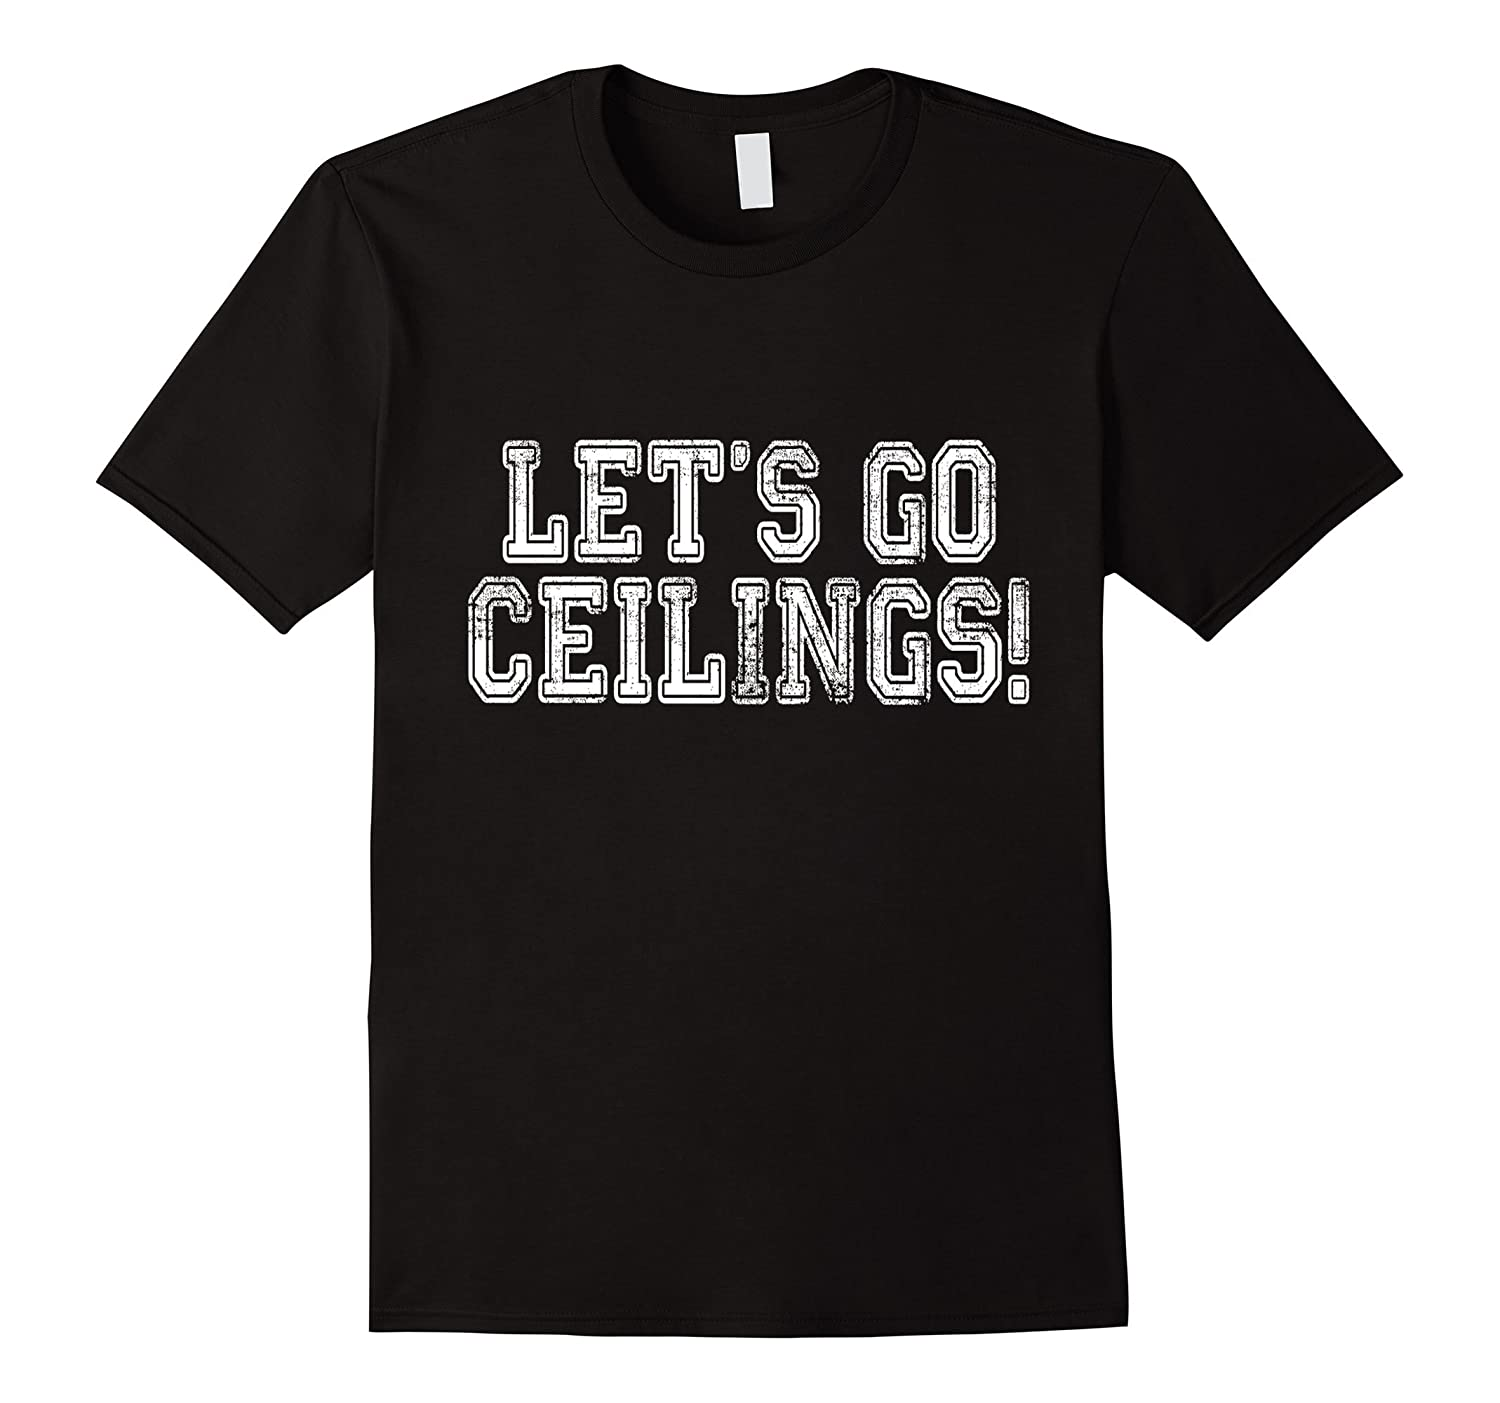 Design t shirt easy -  Lets Go Ceilings T Shirt Funny Easy Halloween Costume Best Design T Shirt